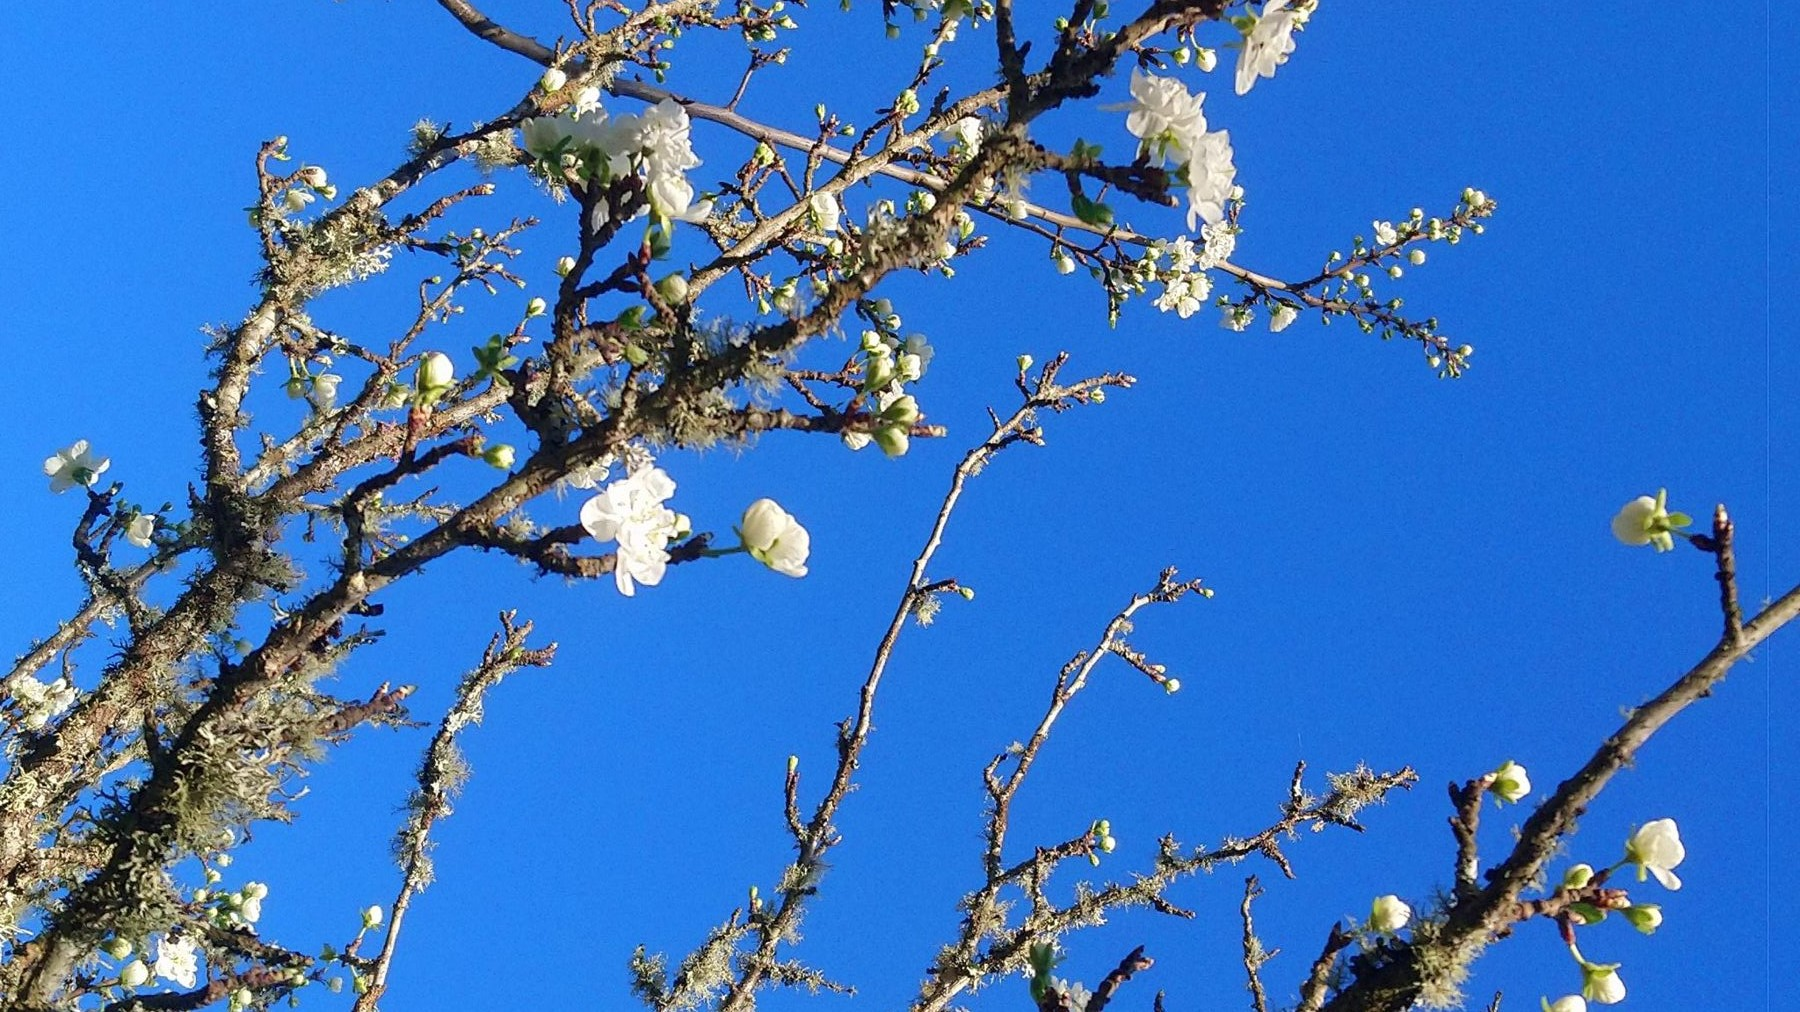 Blossoms on tree at greenvalleyportugal